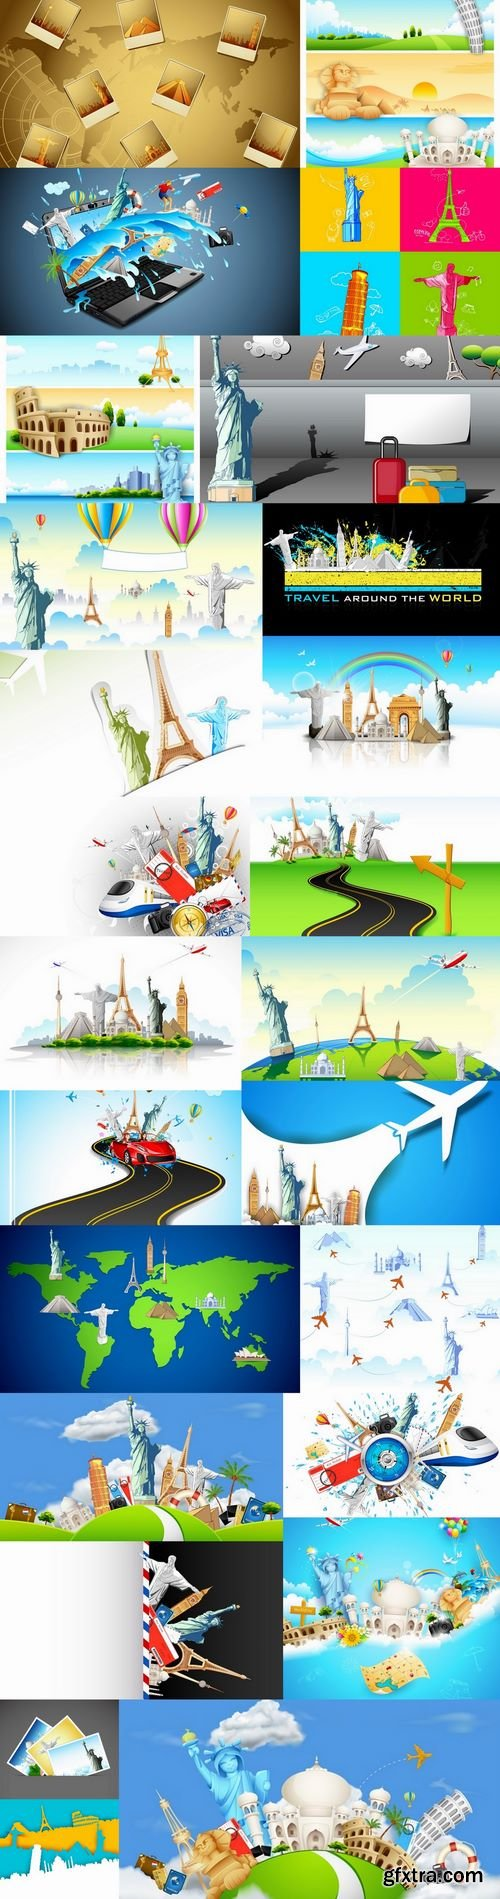 Travel vacation point of interest flyer banner vector image 25 EPS